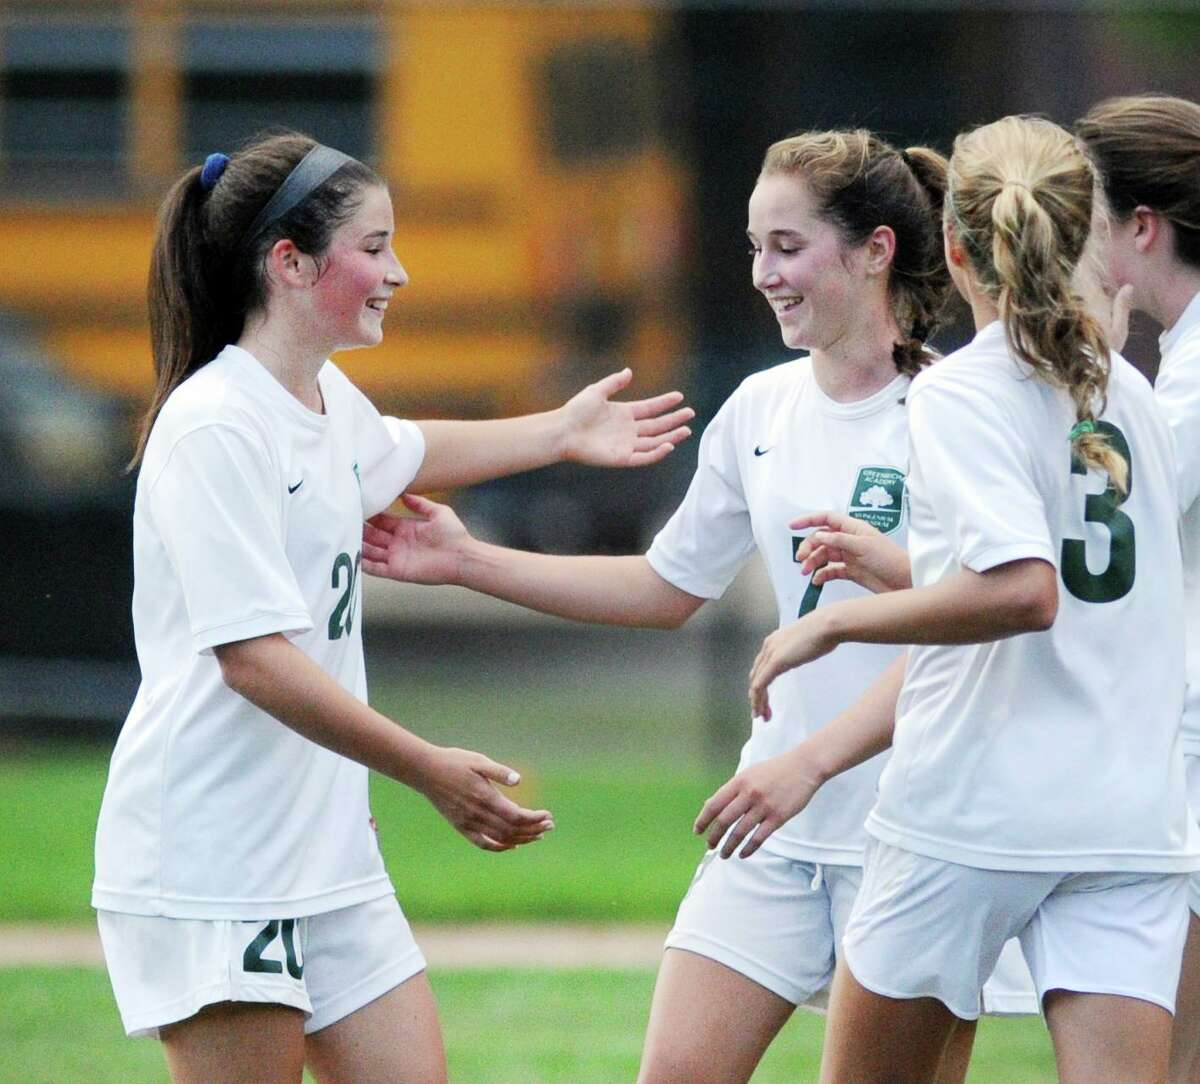 Taylor Lane, (#20), left, and Katie Goldsmith, (#3), right, congratulate their Greenwich Academy teammate Tessa Brooks, center, after Brooks scored a goal during the first half of the girls high school soccer match between King School and Greenwich Academy at King in Stamford, Conn., Thursday, Sept. 14, 2017. GA defeated King, 6-0.